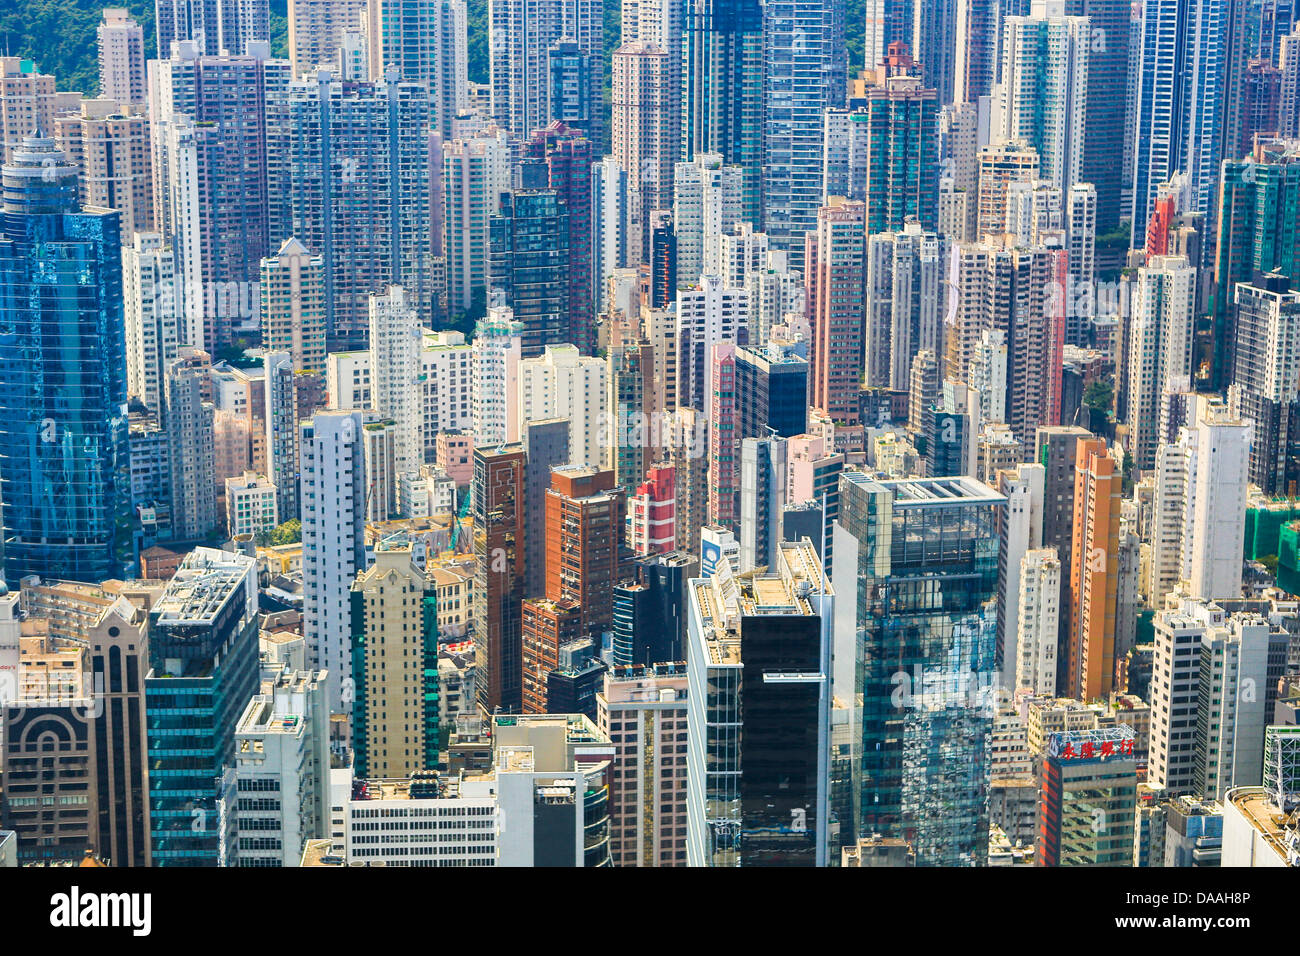 Hong Kong, China, Asia, City, Sheung Wan, District, architecture, buildings, central, skyscrapers - Stock Image